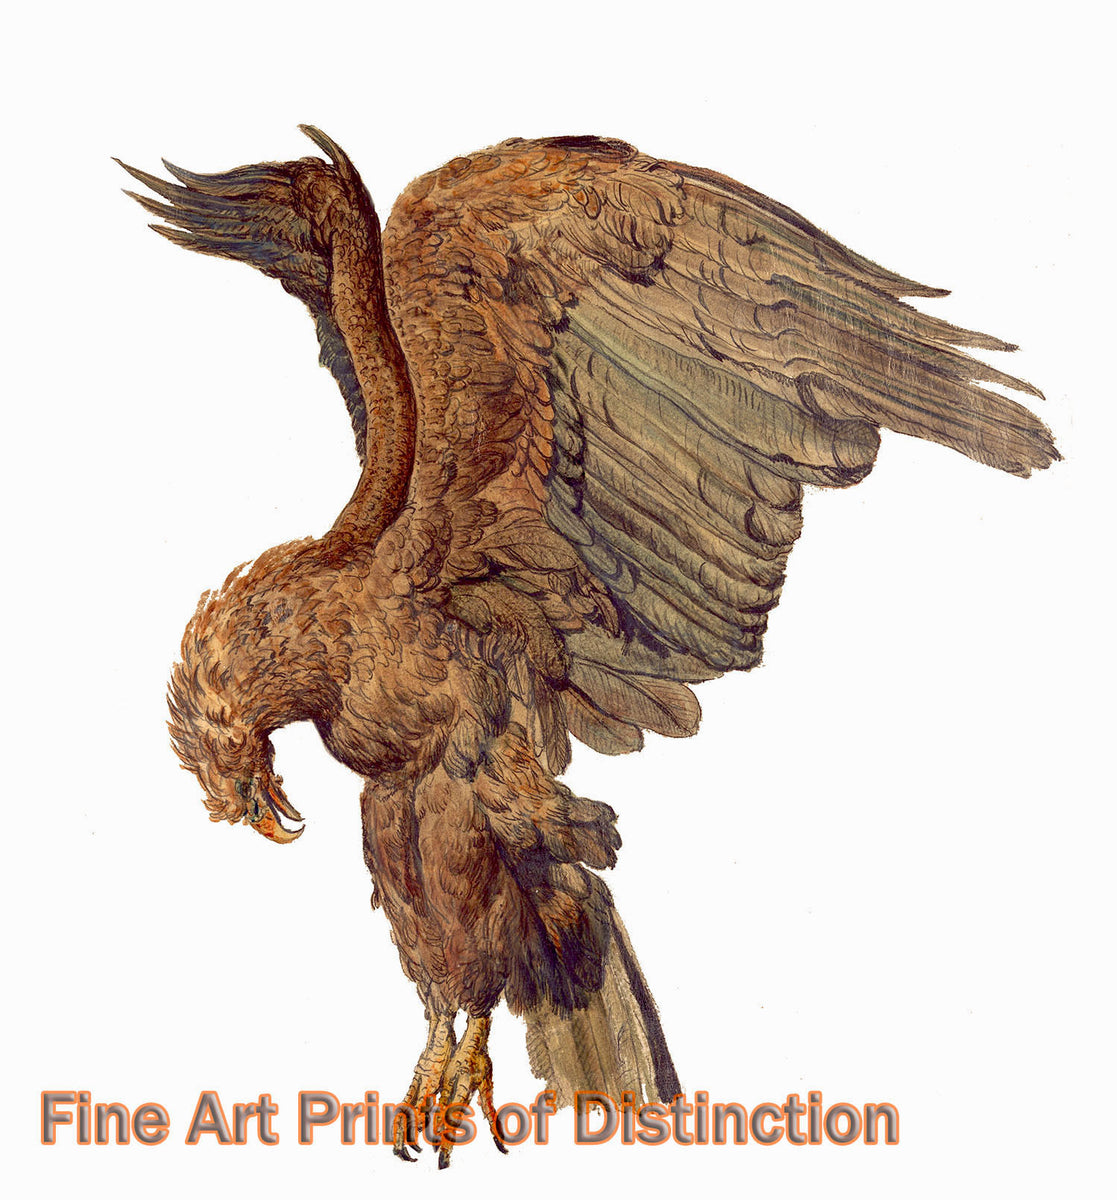 Study of a Plunging Eagle by James Ward Art Print